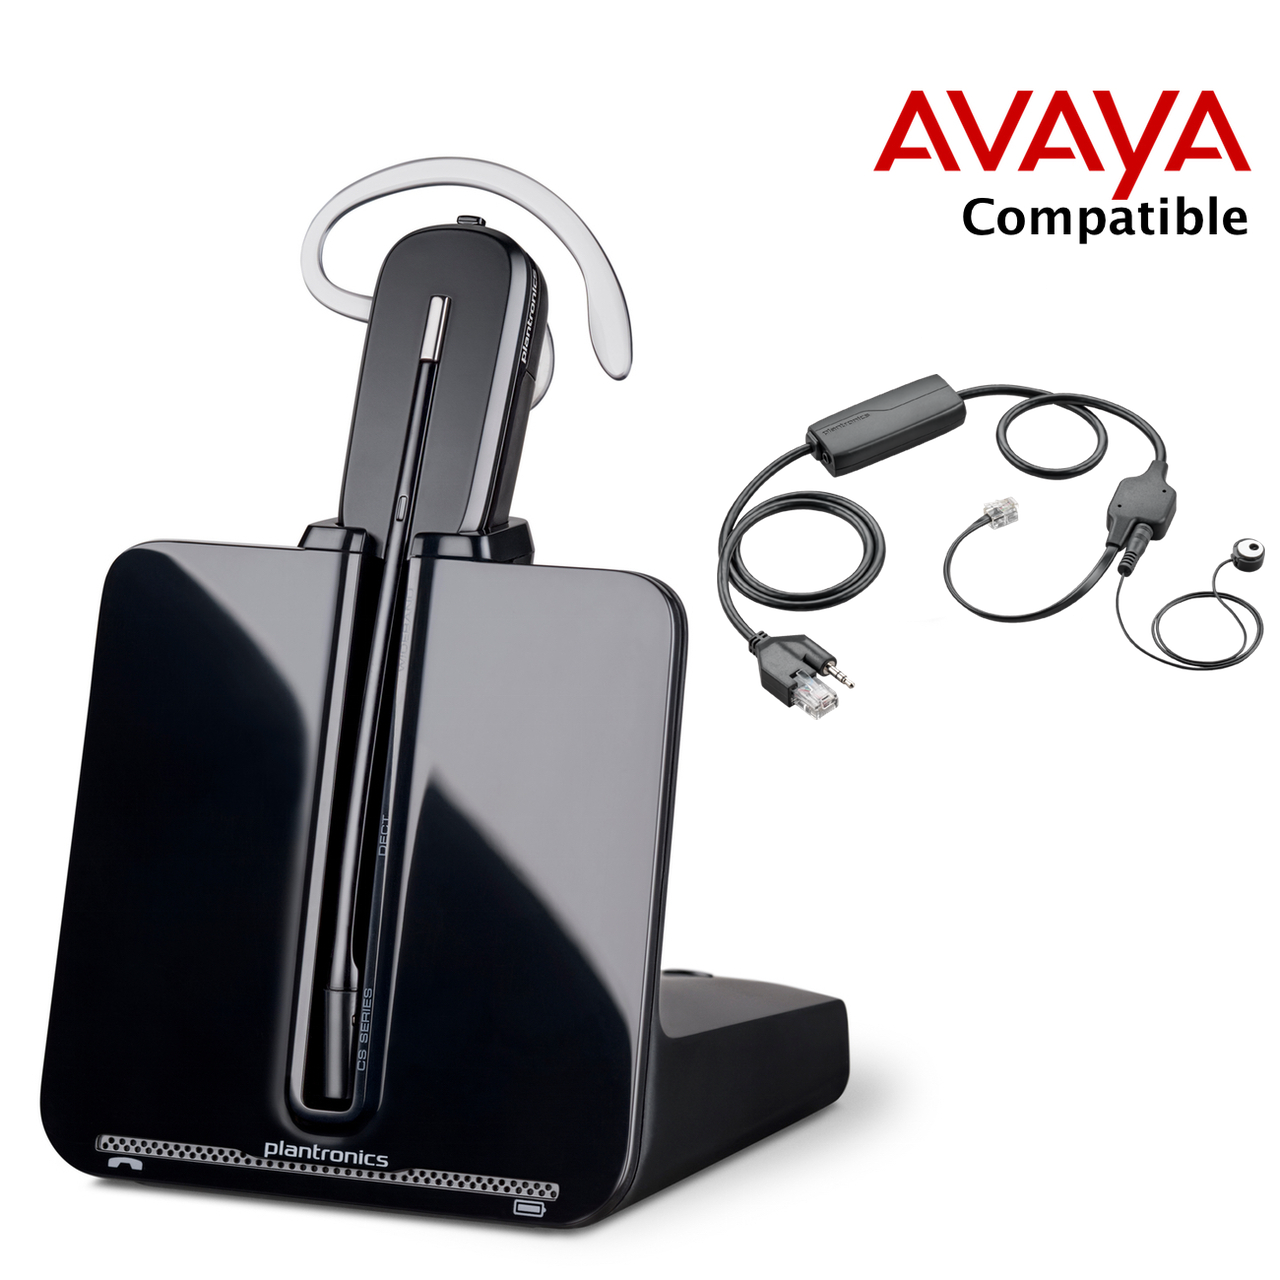 how to make a conference call on avaya phones